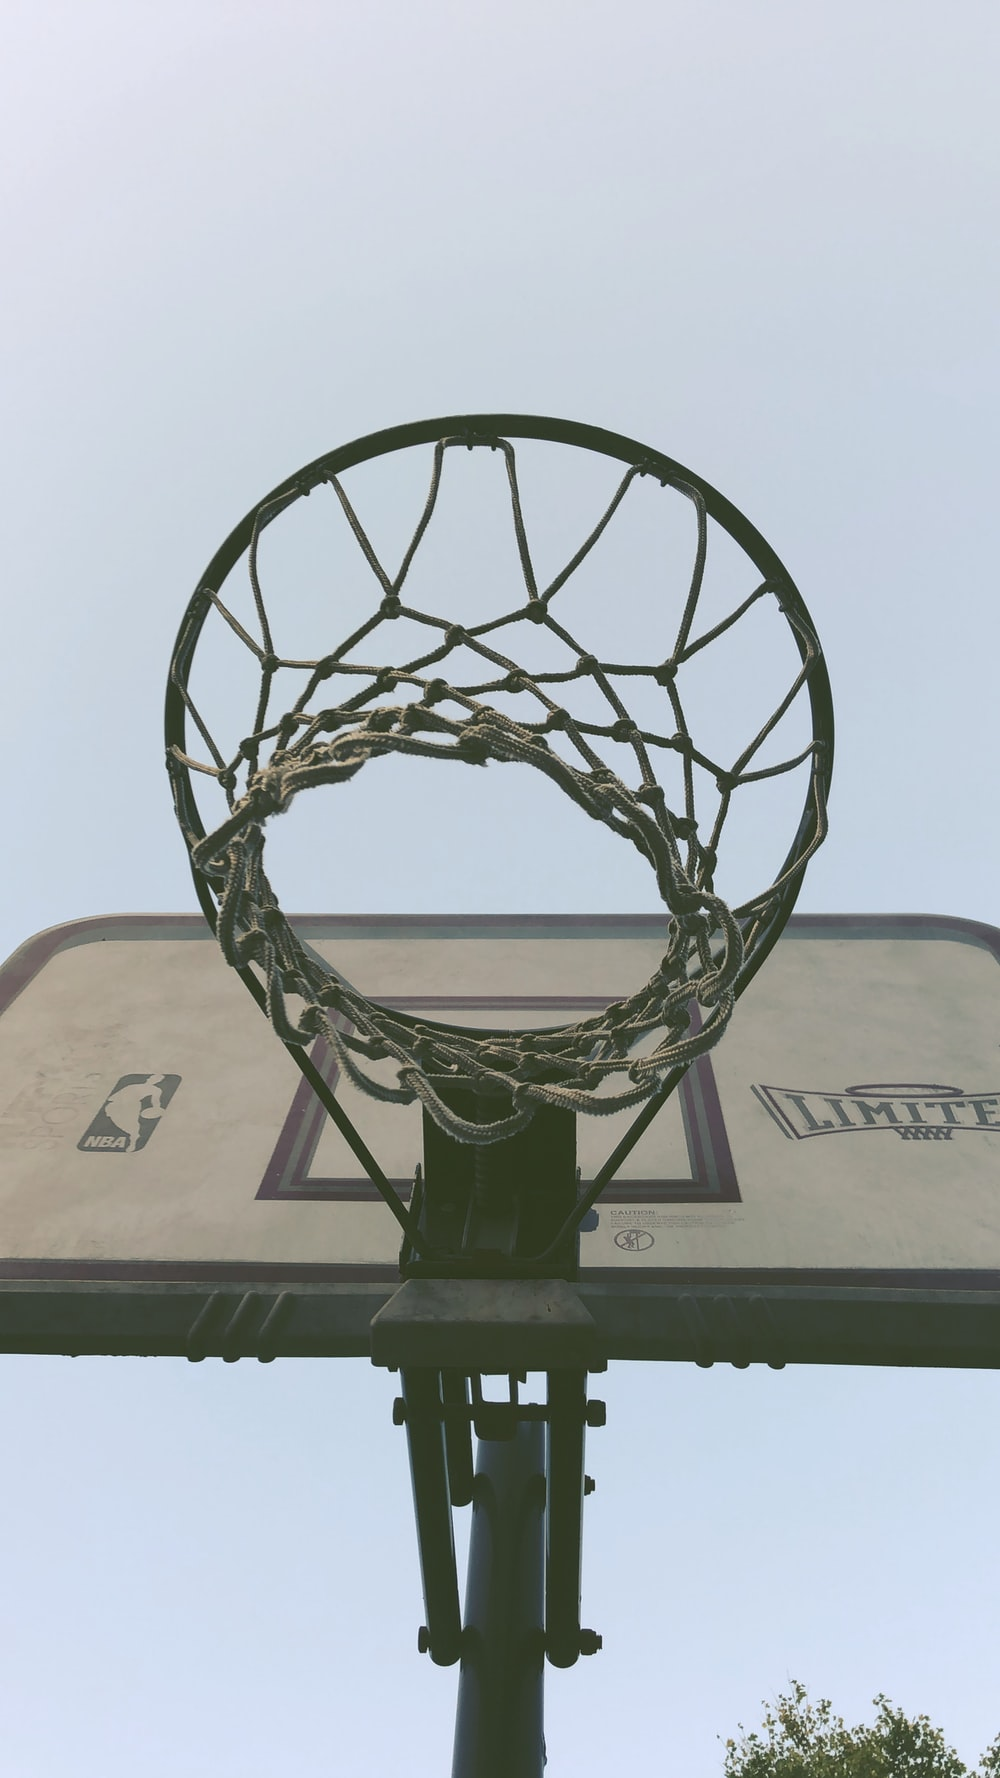 white and black basketball hoop